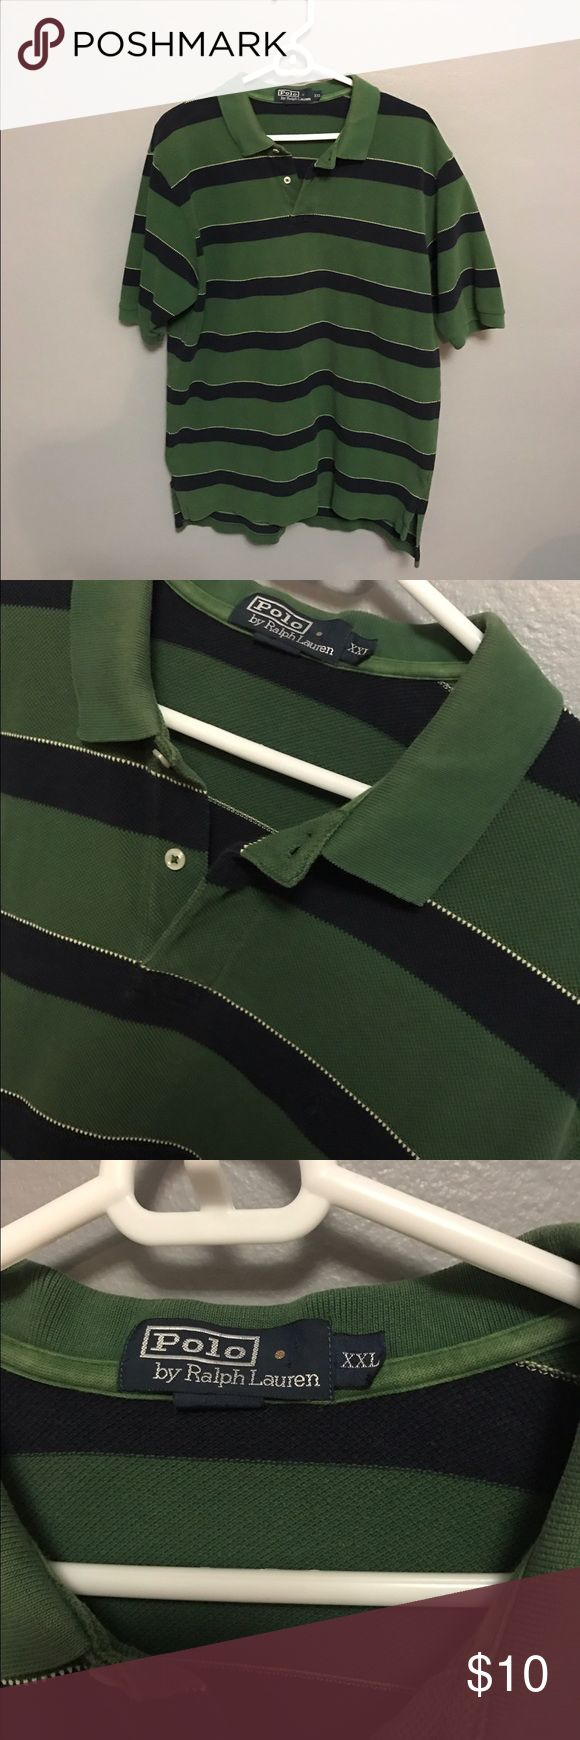 Polo collared shirt casual This is a really nice polo Ralph Lauren collared shirt in a size XXL but fits like an XL. Great price so don't sleep. Great condition Polo by Ralph Lauren Shirts Polos